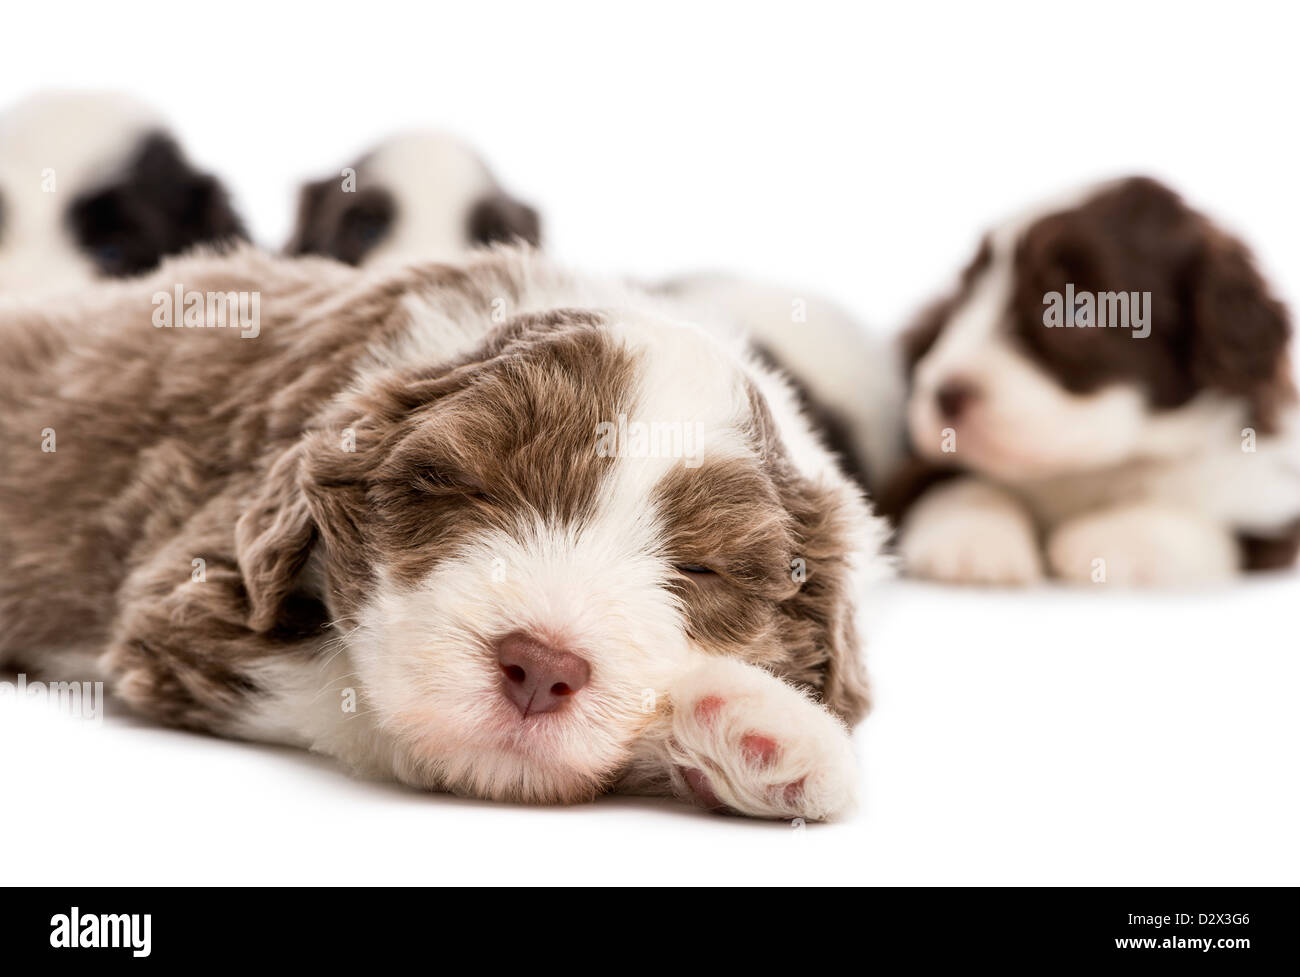 Close-up of a Bearded Collie puppy, 6 weeks old, sleeping in front of others against white background - Stock Image